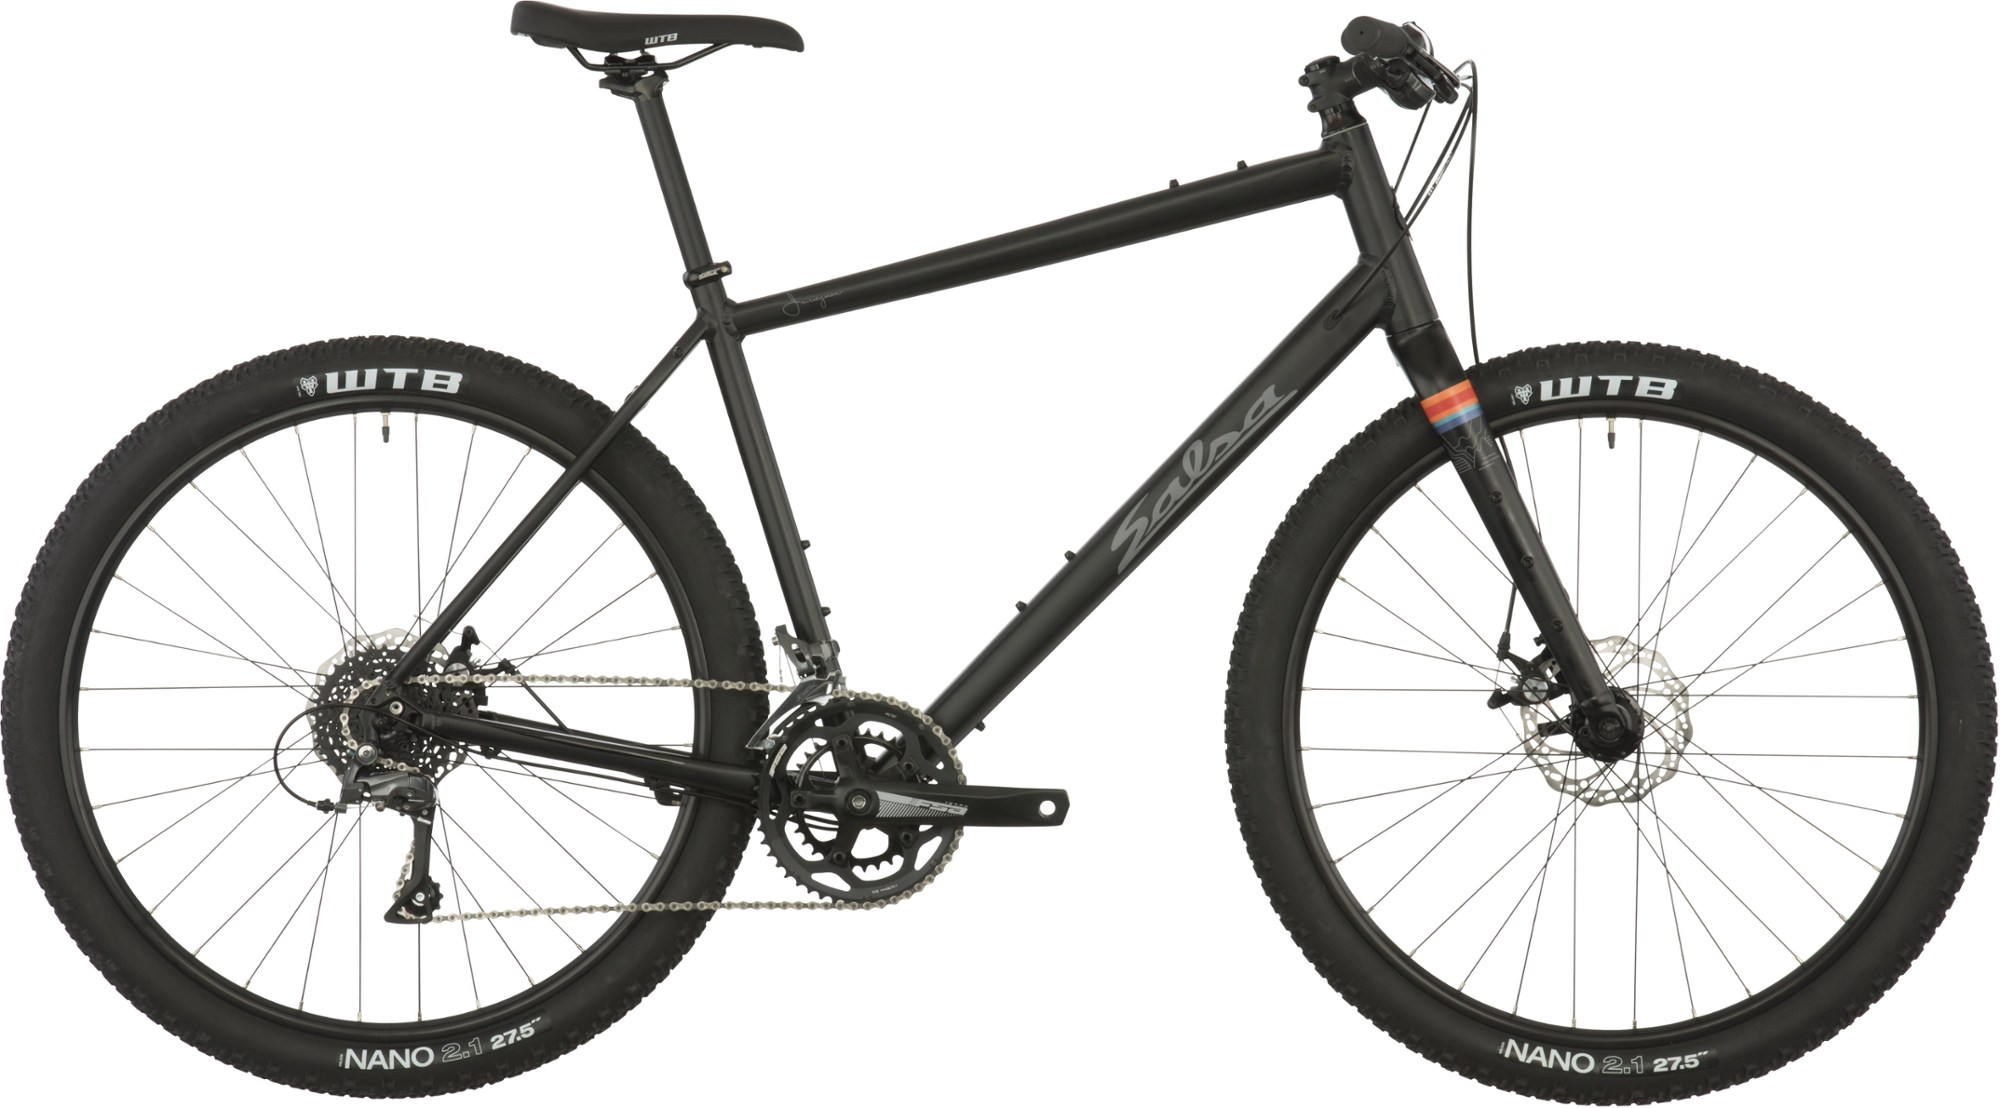 Salsa Journeyman Flat Bar Claris 650 Bike